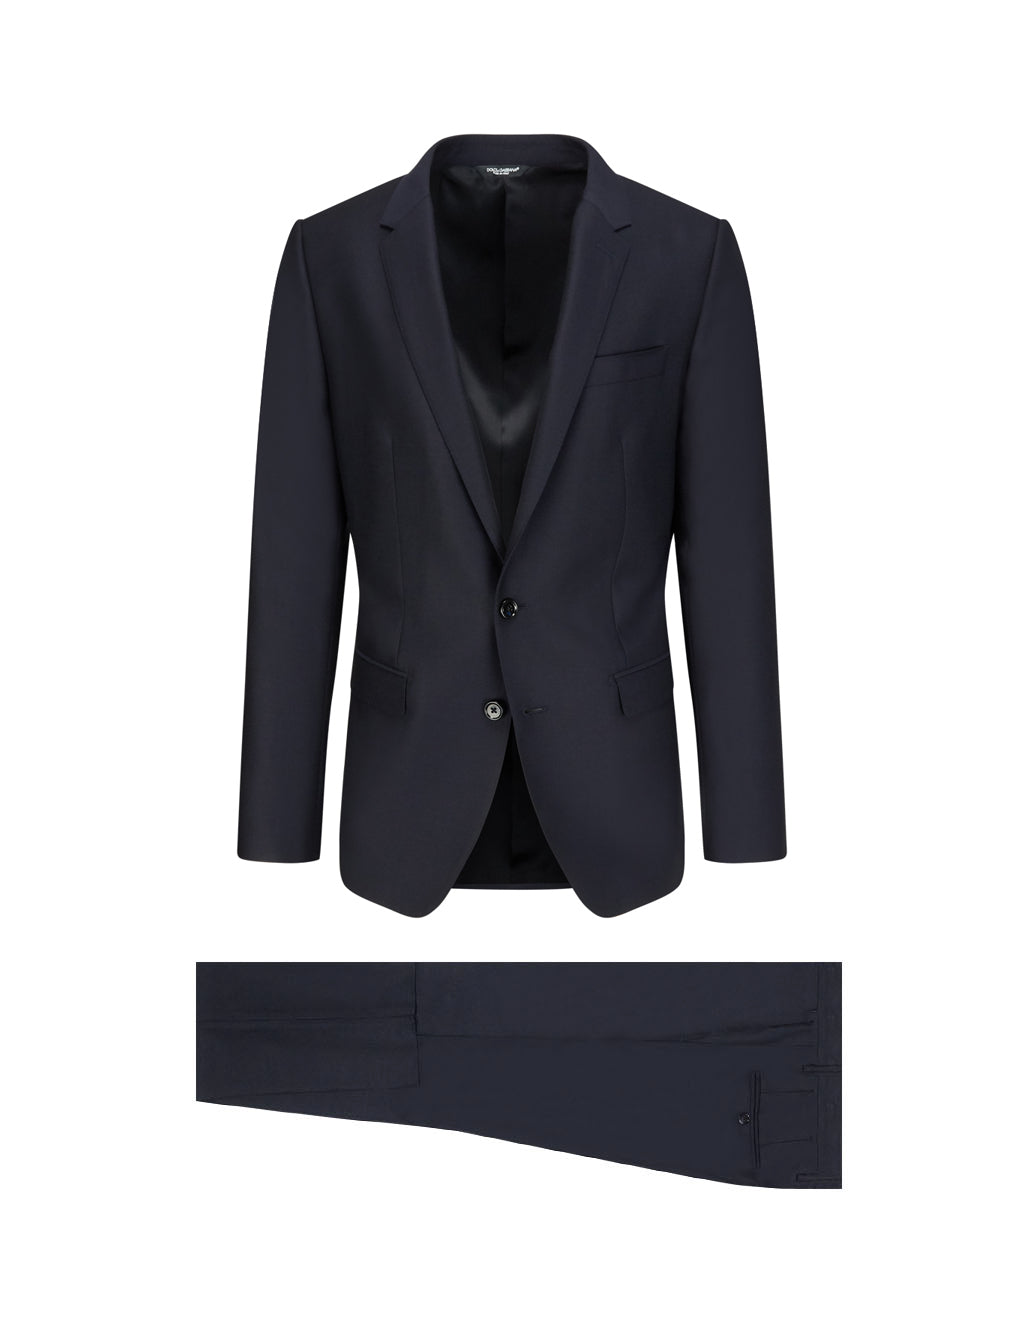 Dolce&Gabbana Men's Giulio Fashion Navy Business Suit GK0EMTFU2REB6712